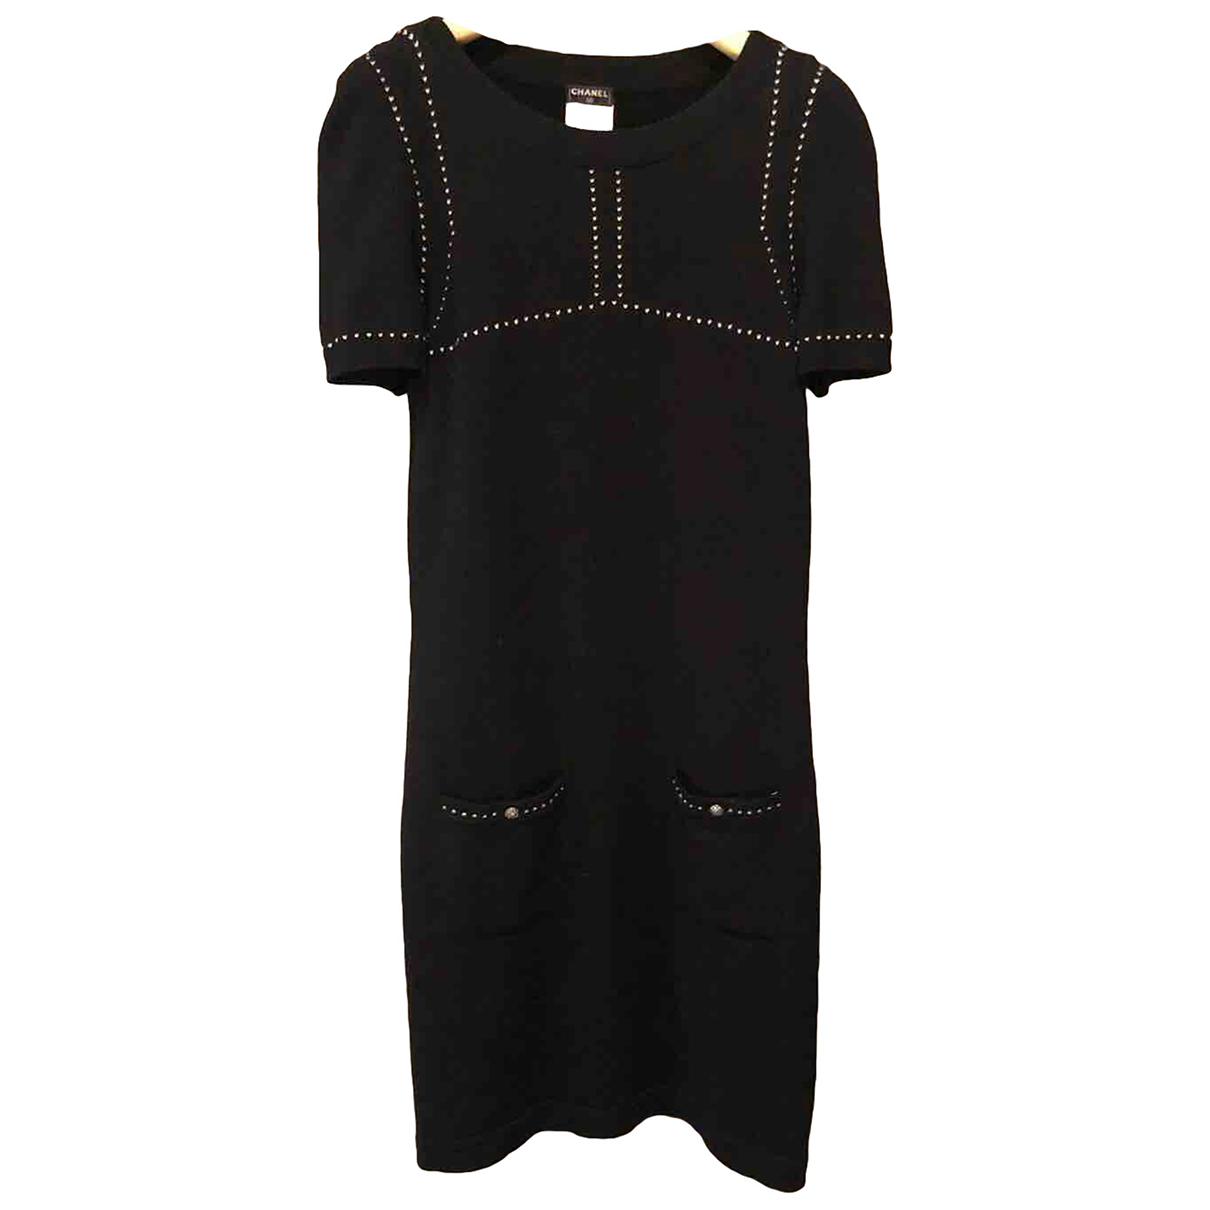 Chanel N Black Cashmere dress for Women 38 FR